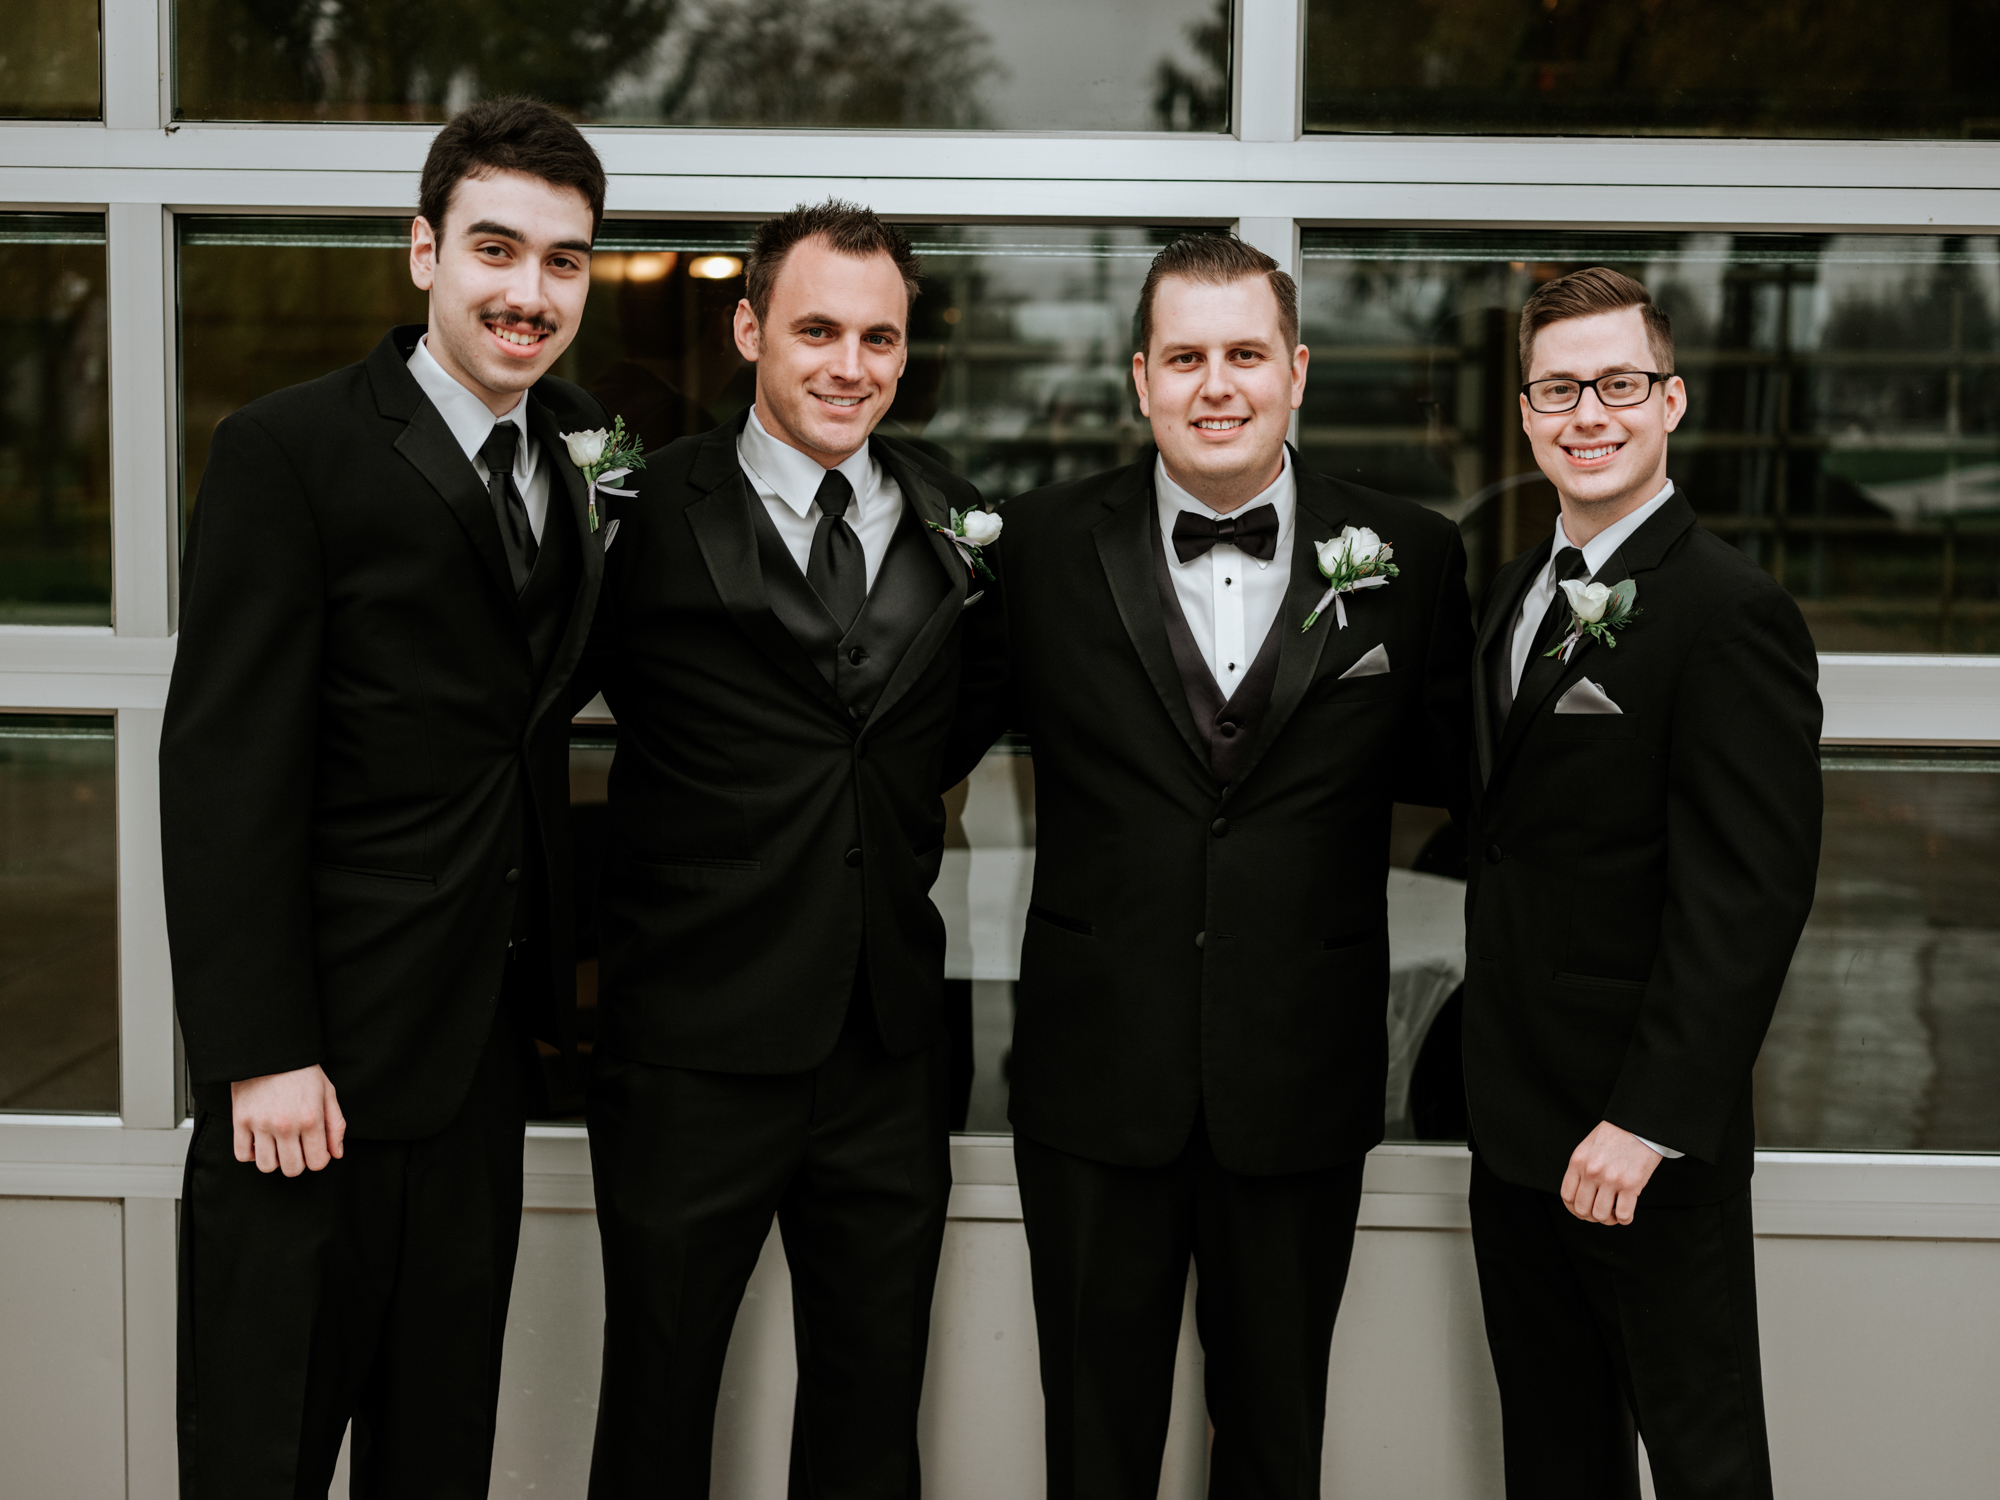 Stolen Glimpses Seattle Wedding Photographers 41.jpg